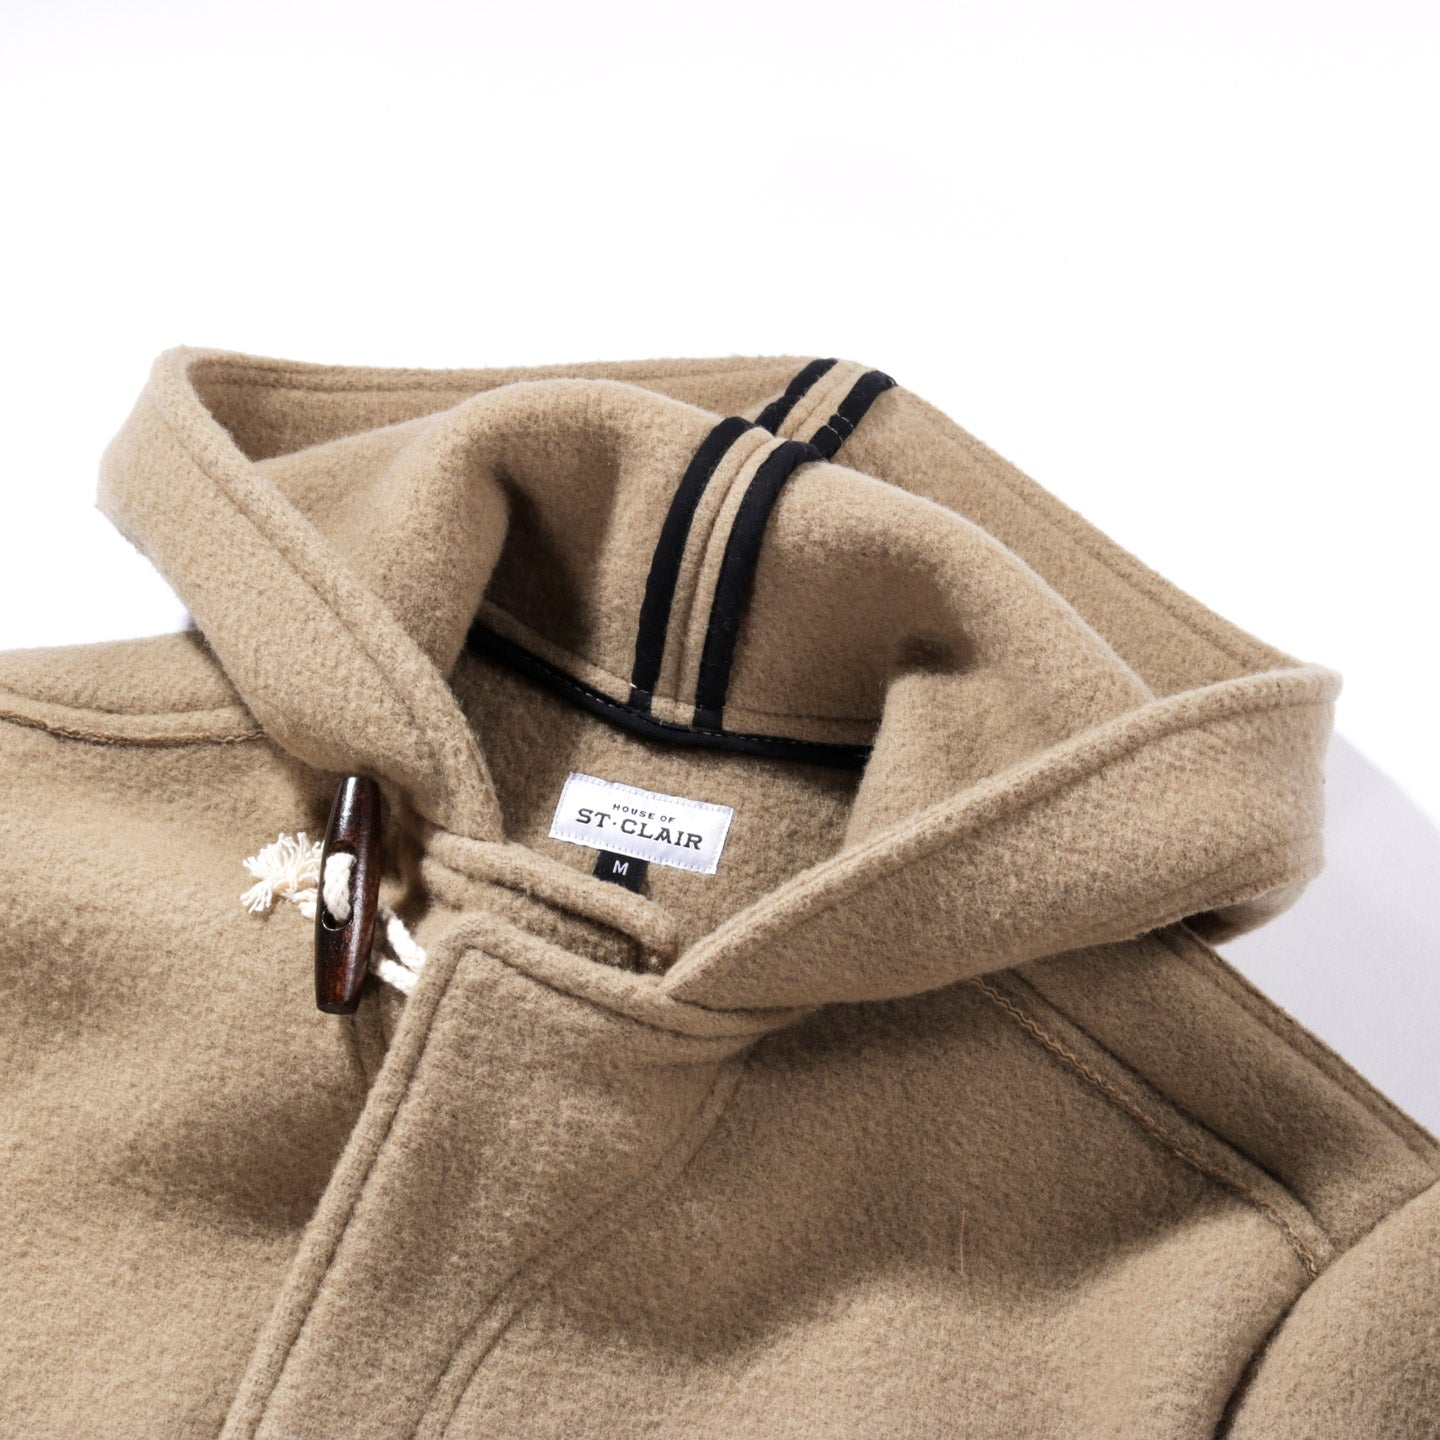 HOUSE OF ST. CLAIR BELLE ISLE TOGGLE COAT CAMEL DUFFLE